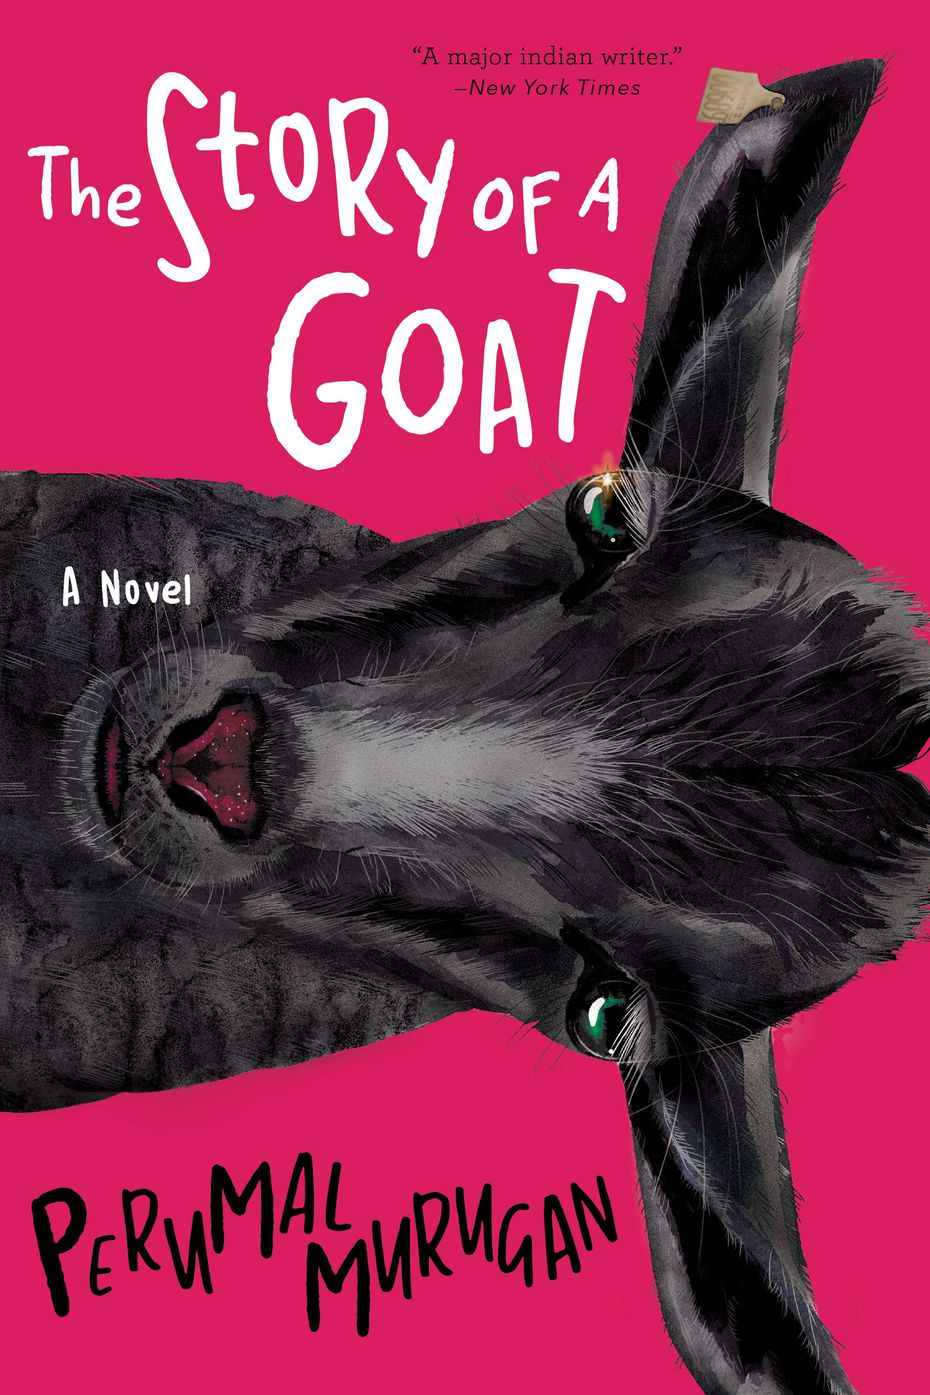 """The Story of a Goat"" demonstrates that adults, too, can enjoy fiction in which animals articulate their own curious perspectives on their lives — and ours."